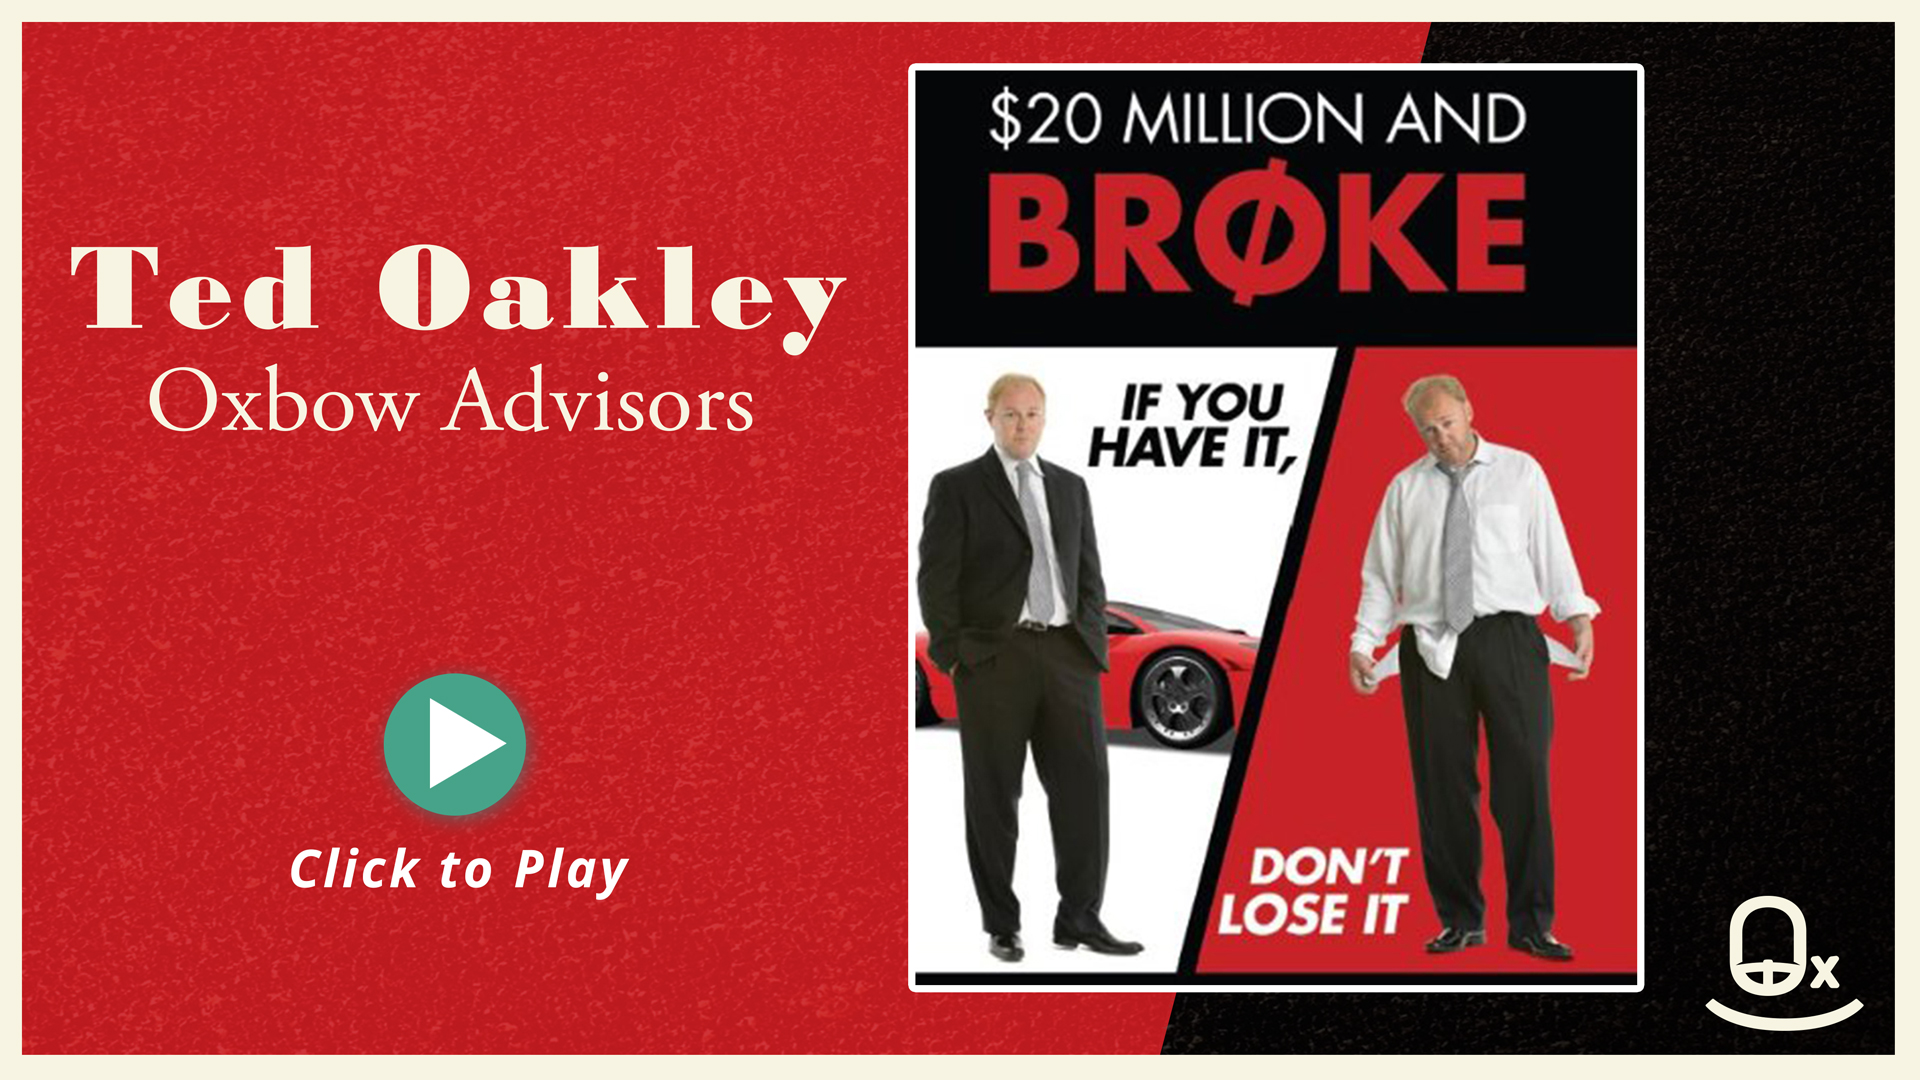 August-1-Ted-Oakley-20-Million-and-Broke